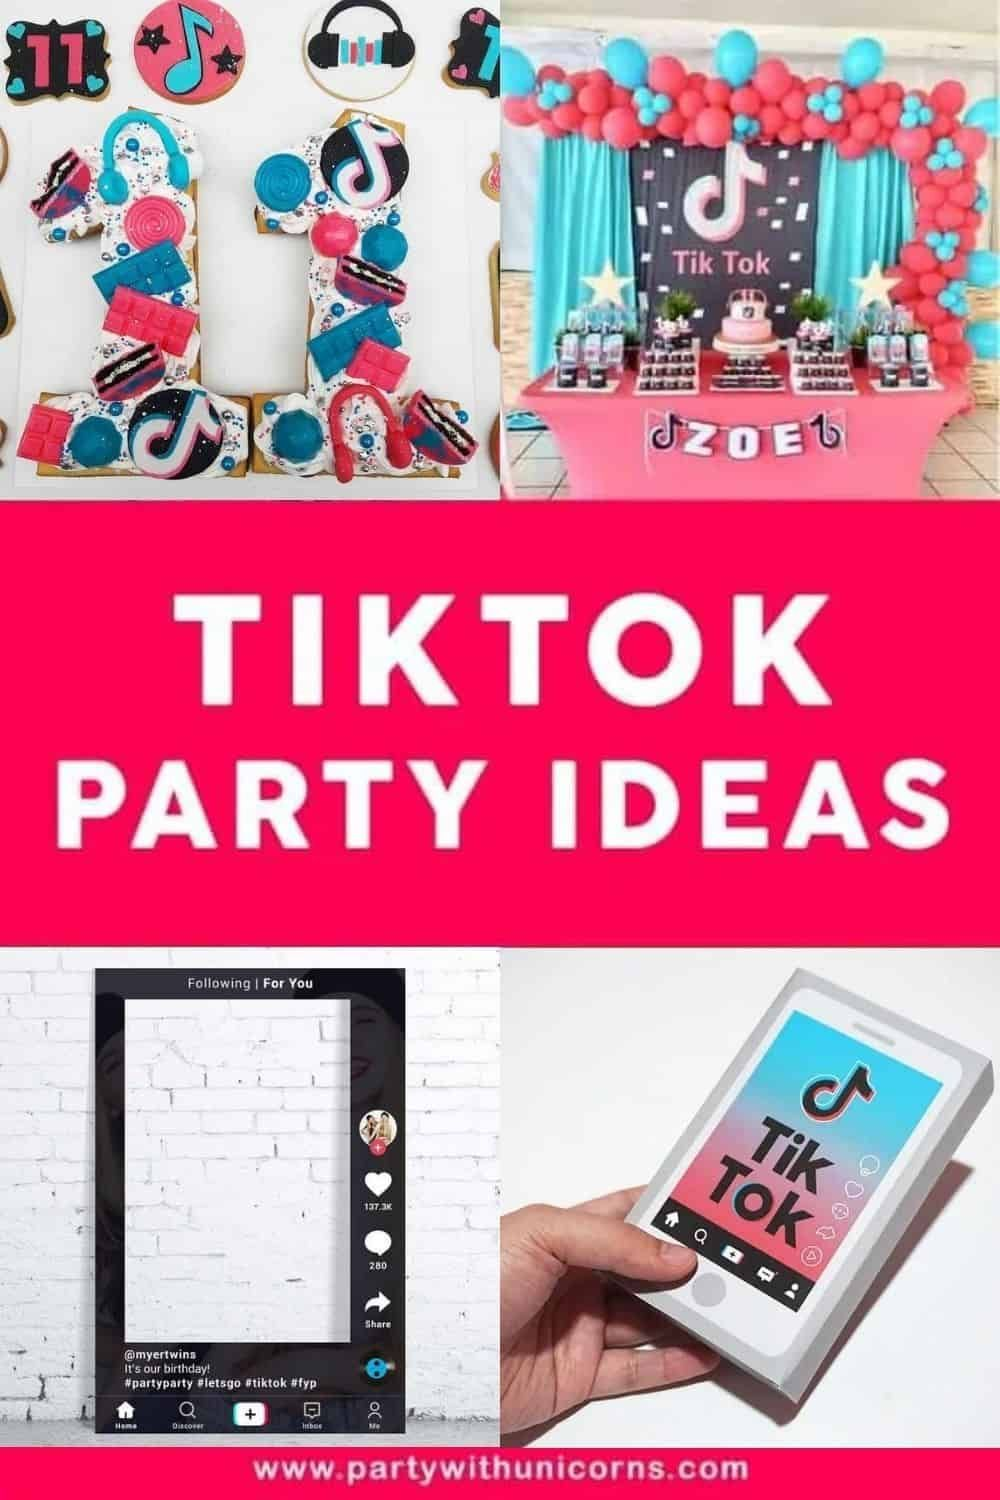 Tiktok Party Ideas Decorations Games Favors More Kids Birthday Party Entertainment Kids Party Games Birthday Party Games